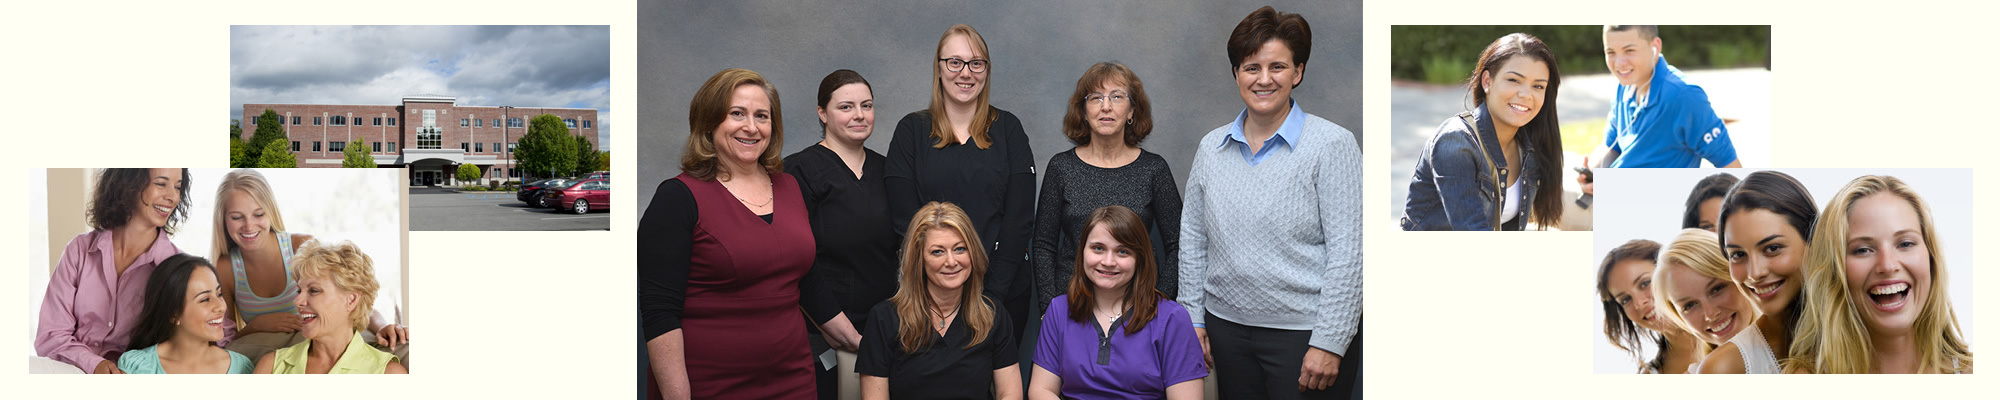 Saratoga Gynecology Associates providers staff